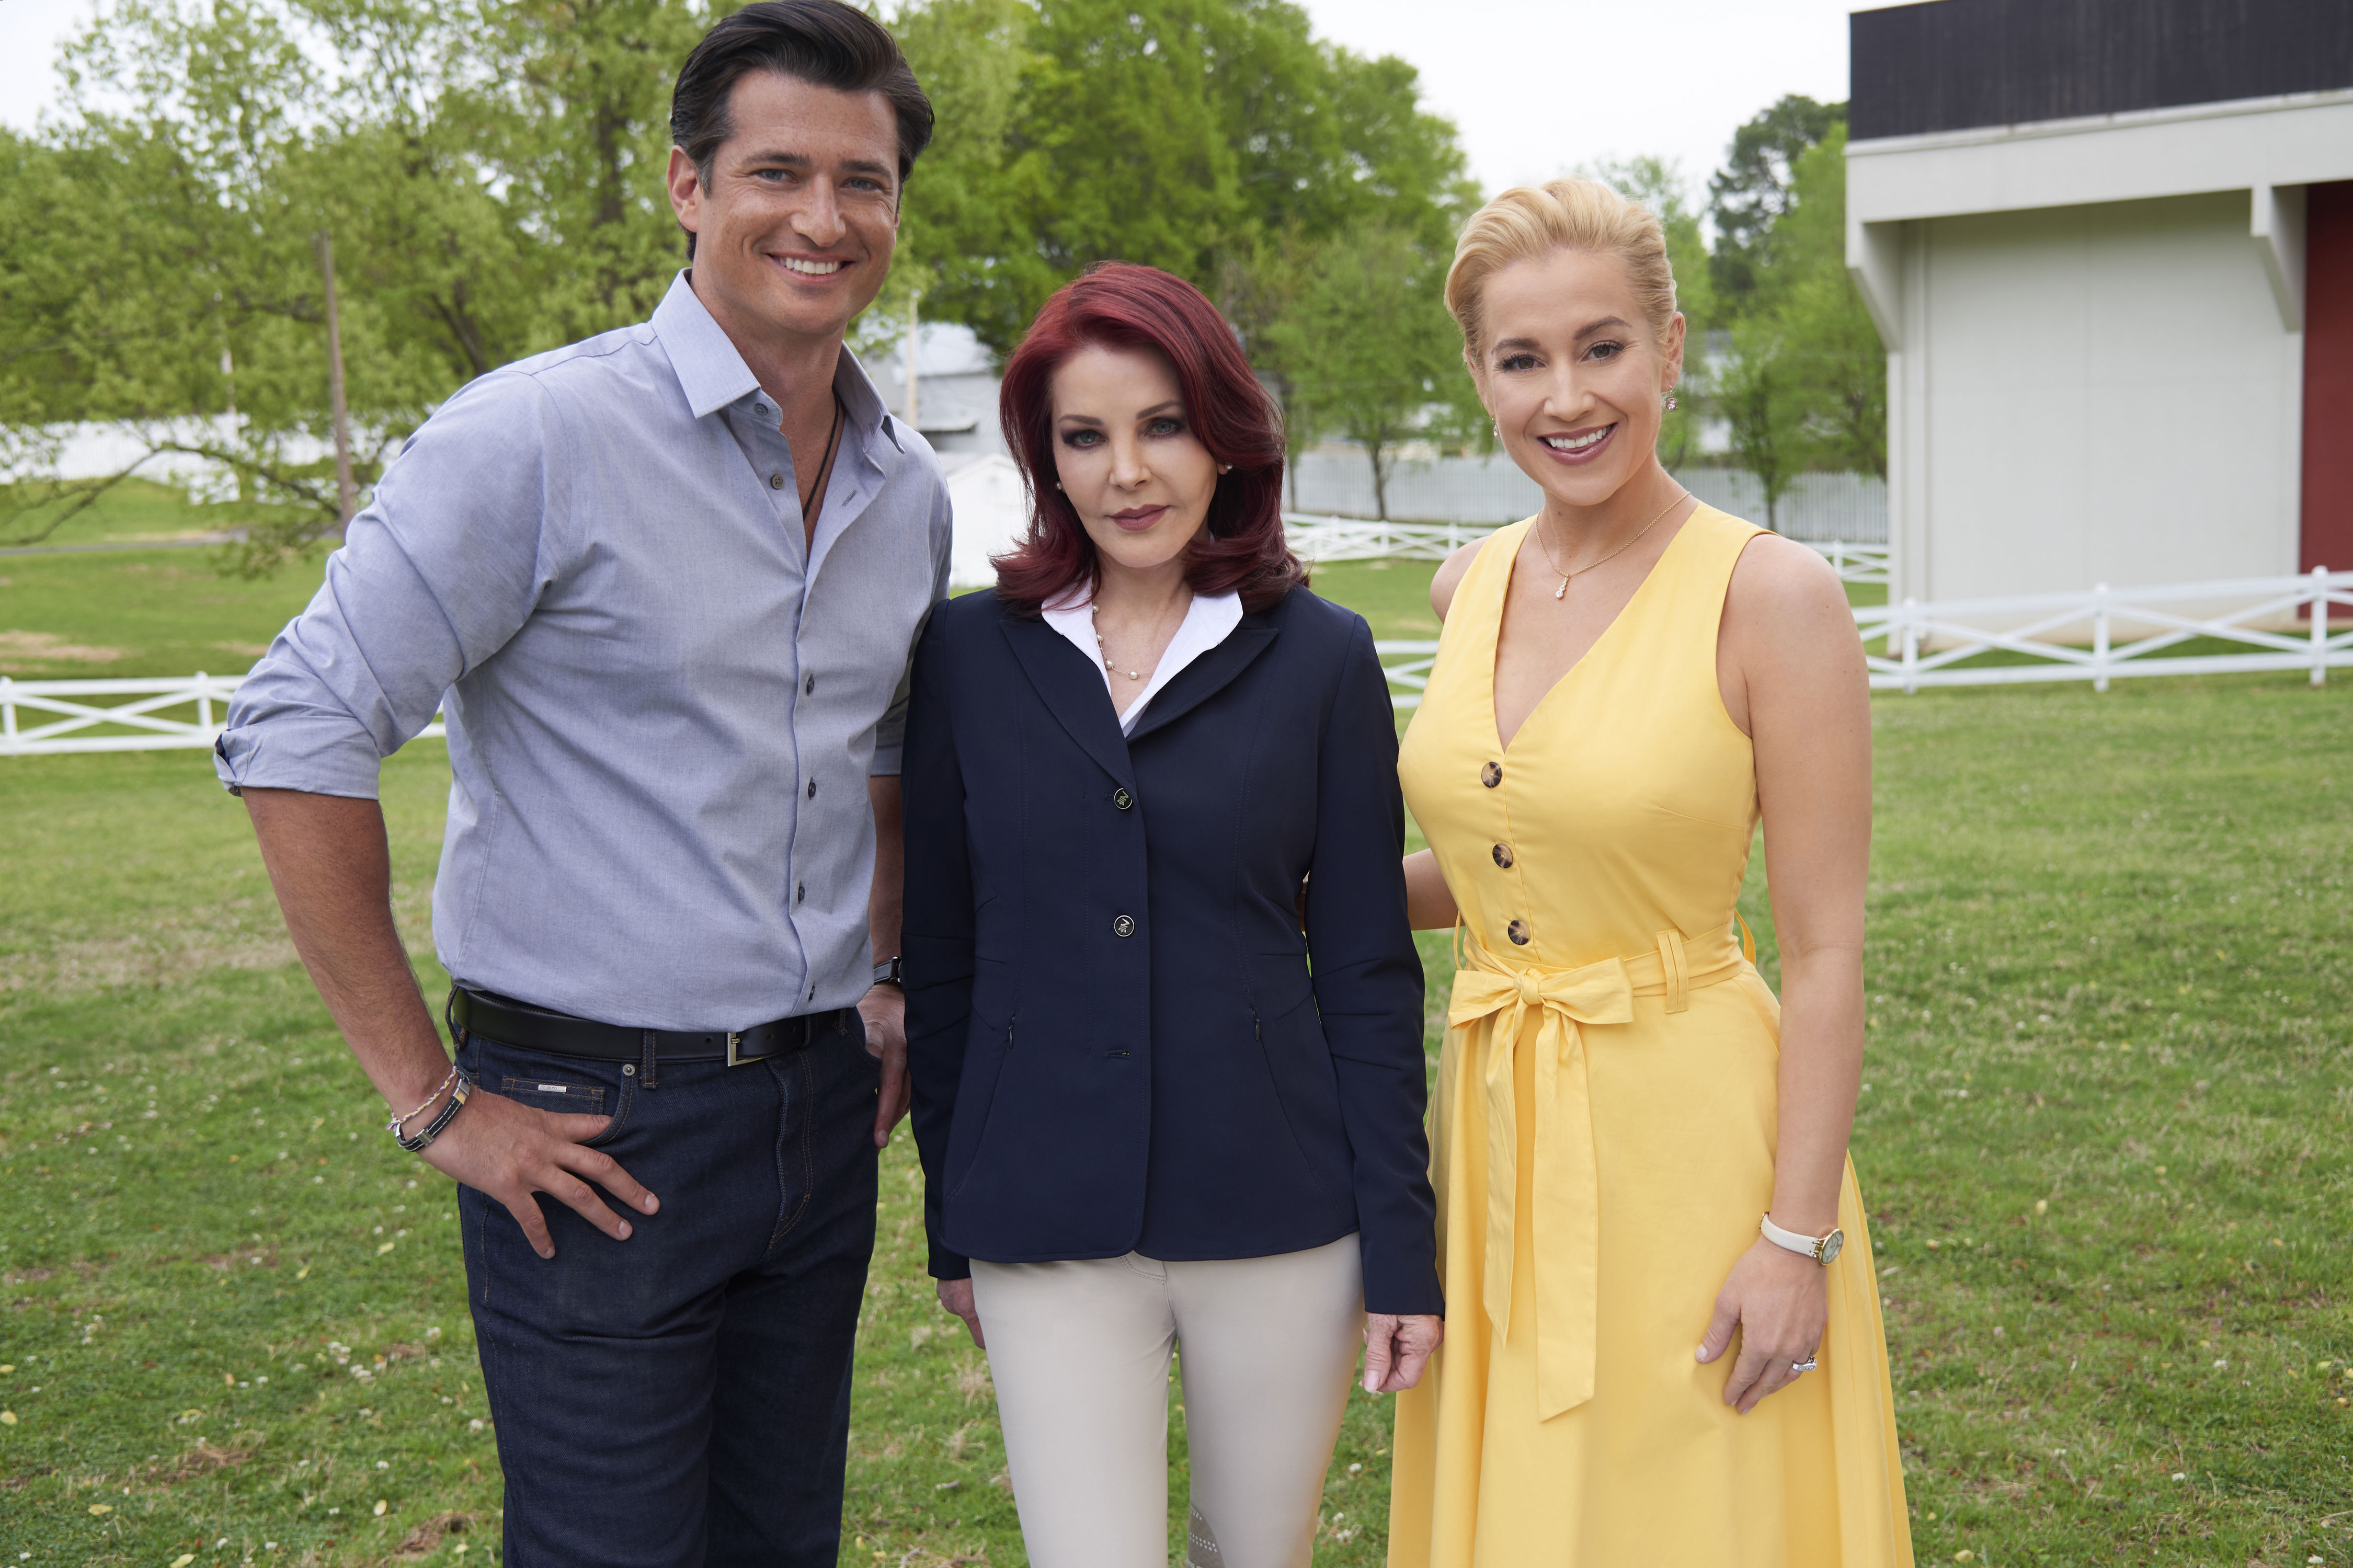 Christmas At Graceland 2 Cast.Wes Brown Shares Elvis Stories From Priscilla Presley